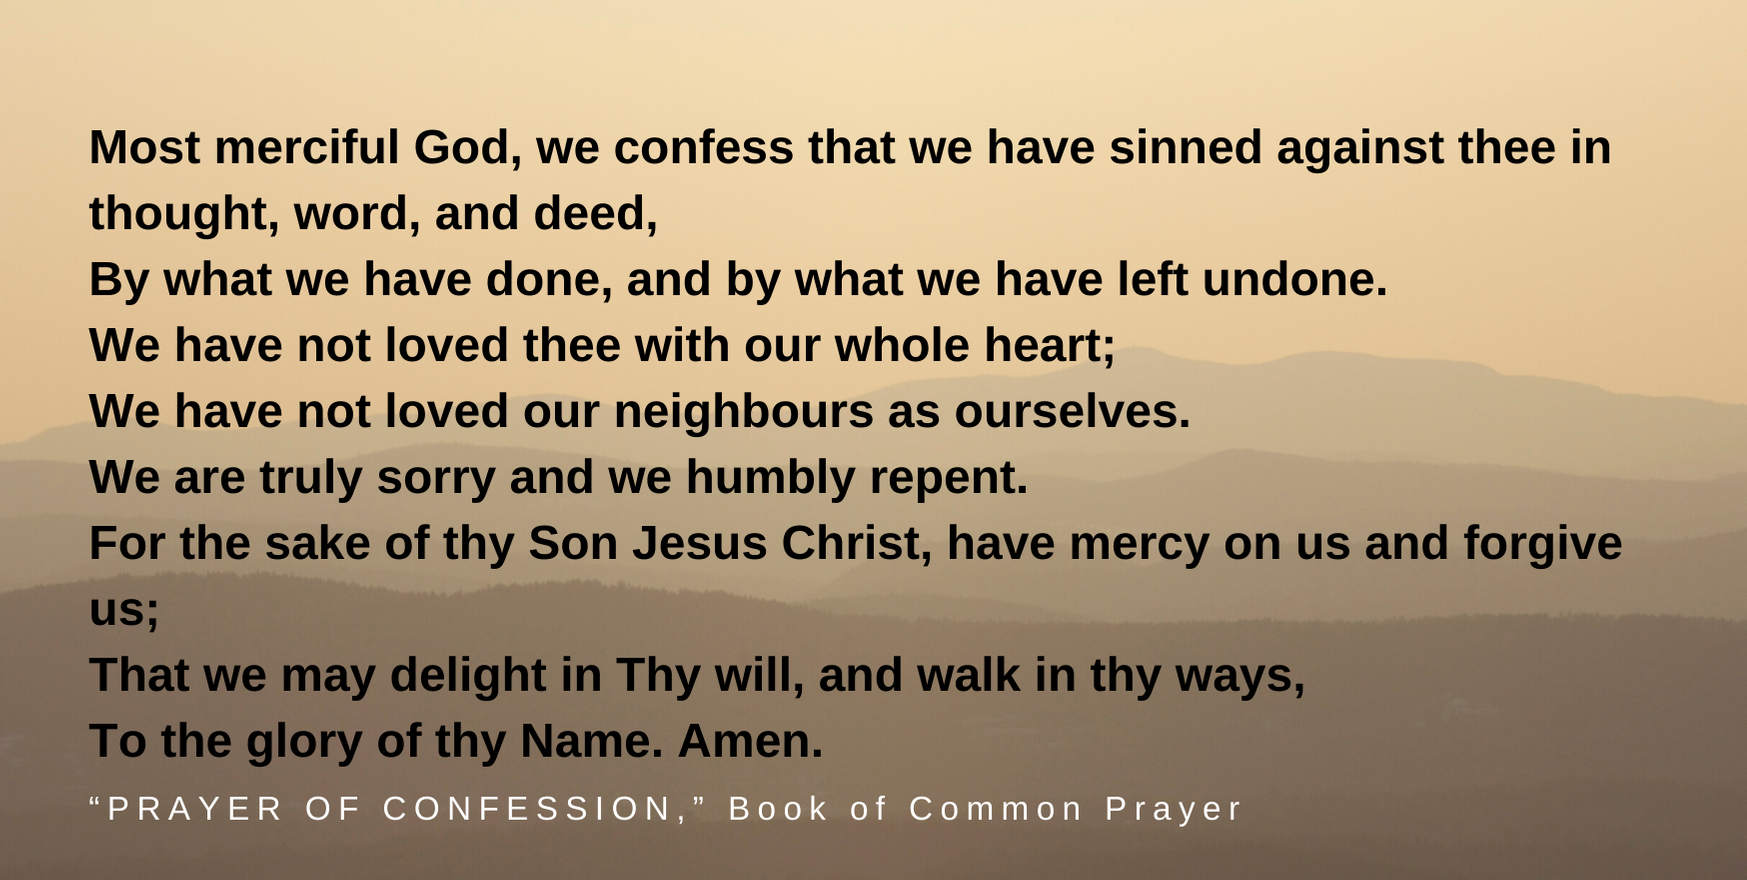 prayer of confession BCP.png